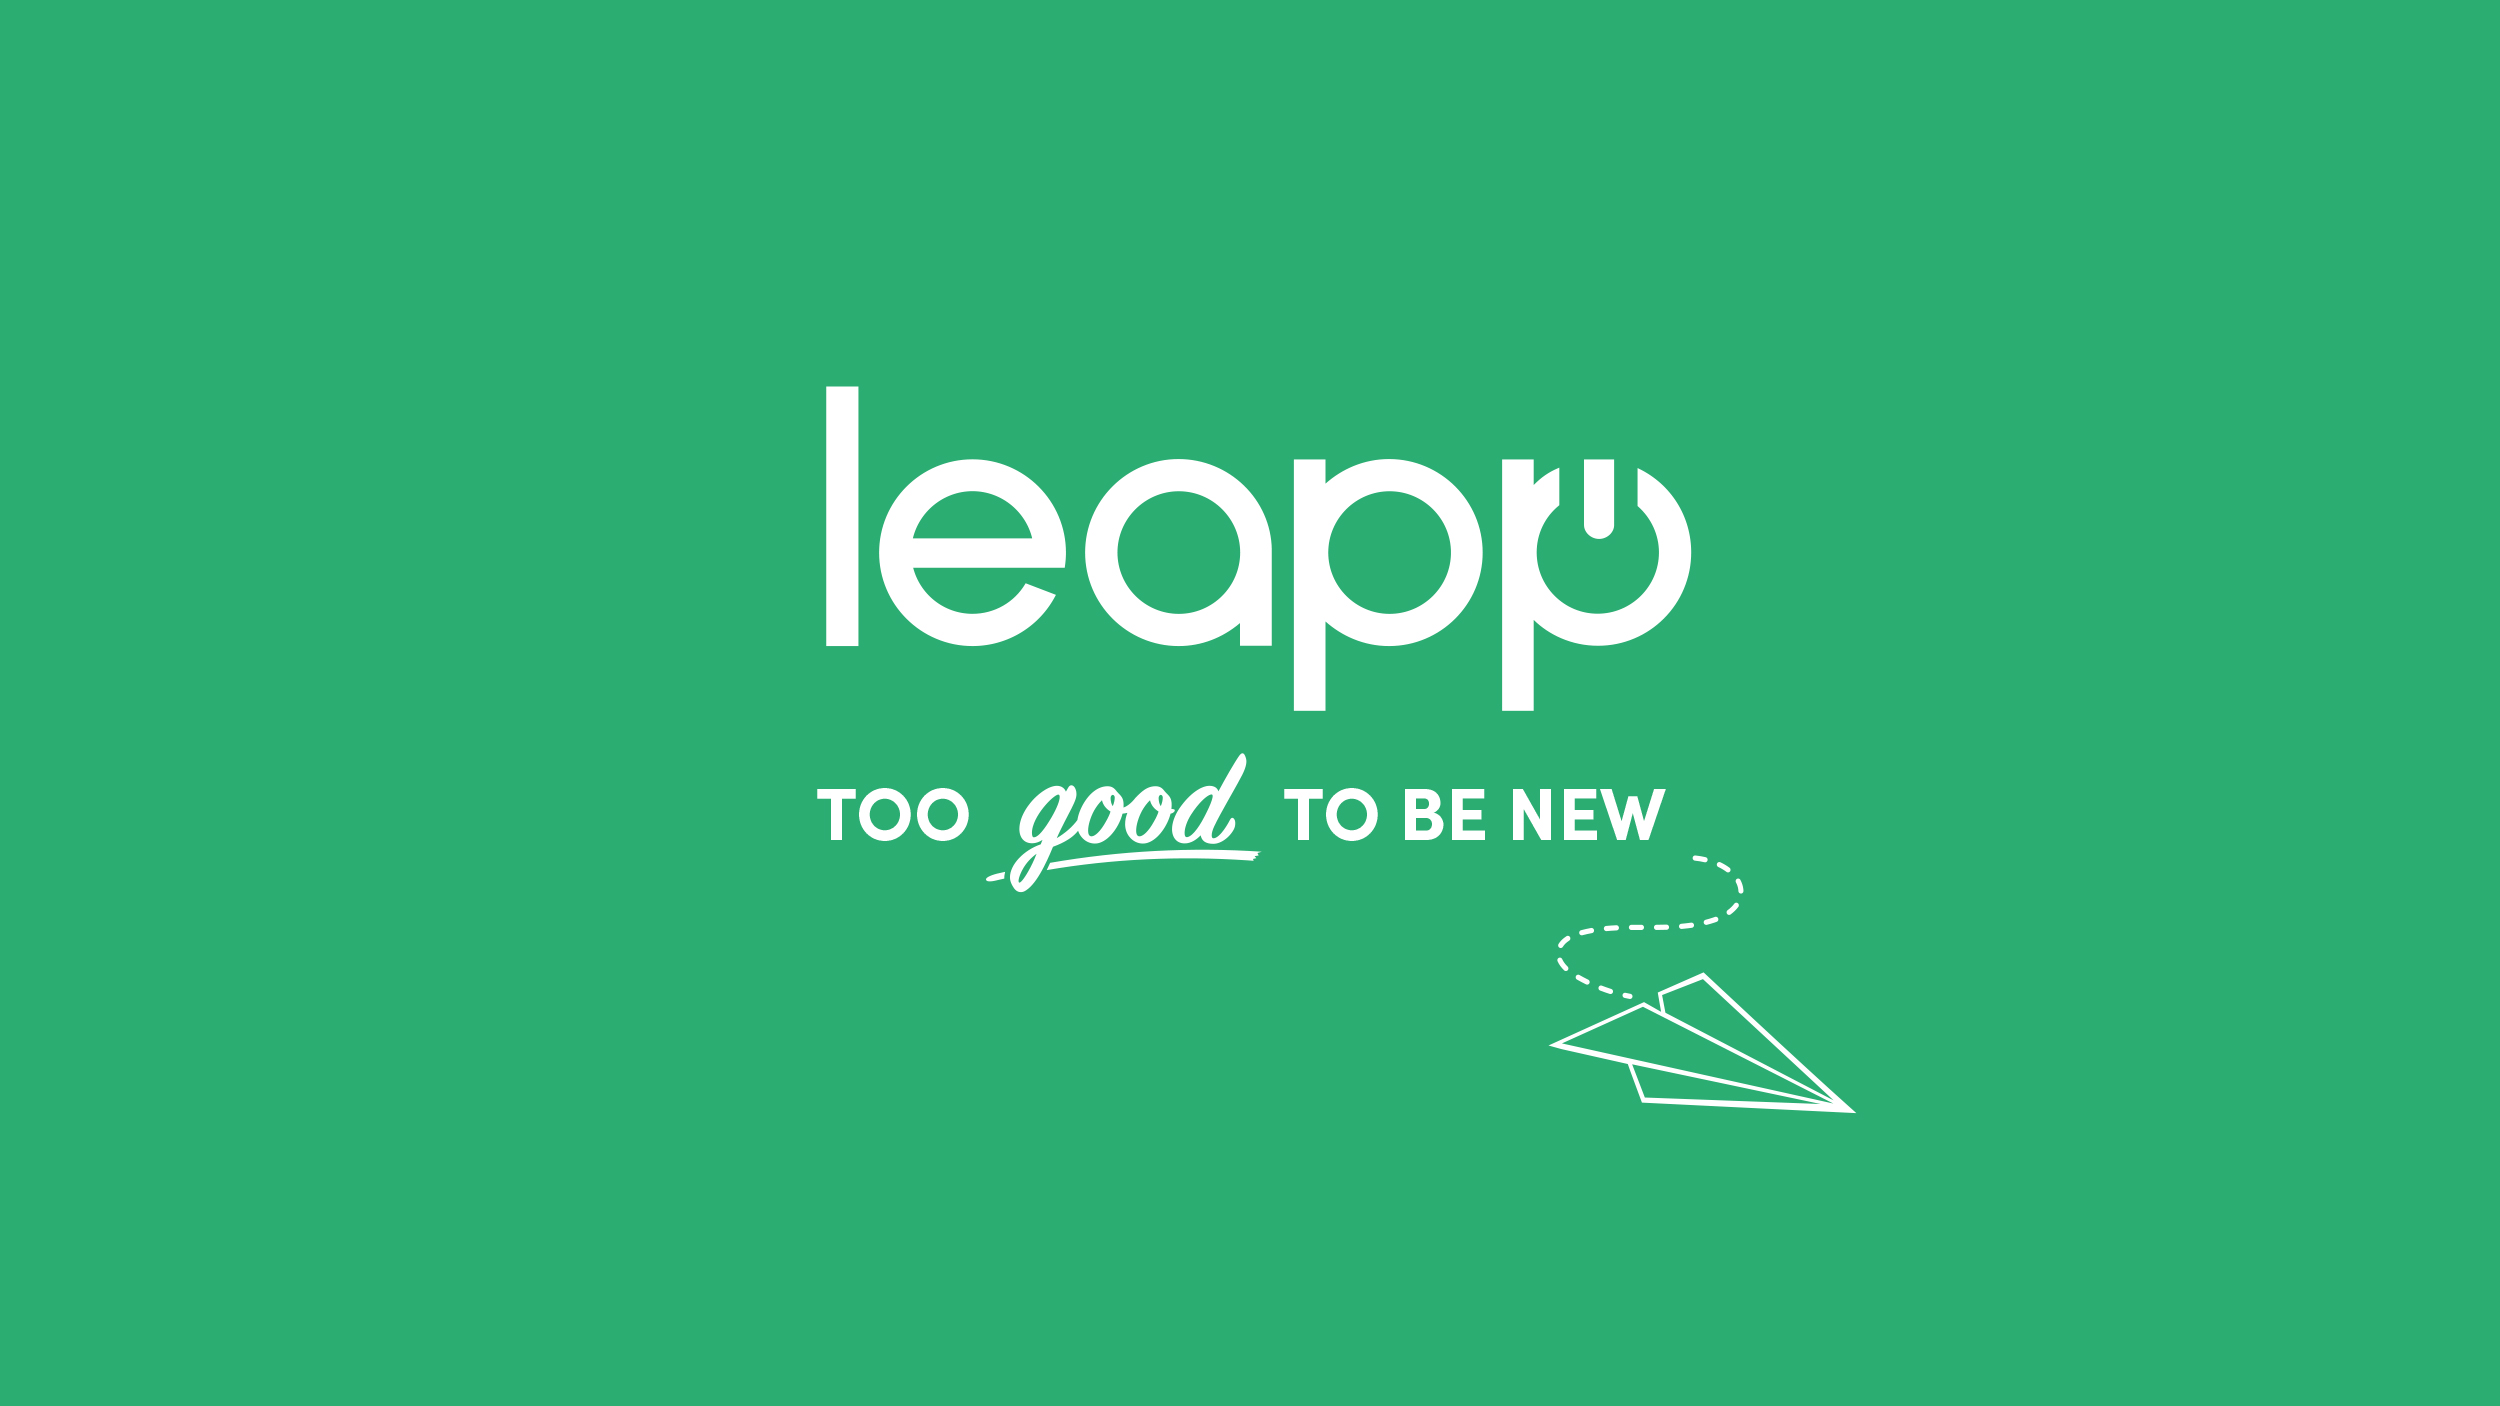 Leapp - Buying a refurbished device is not only smart for your wallet but also better for the environment.